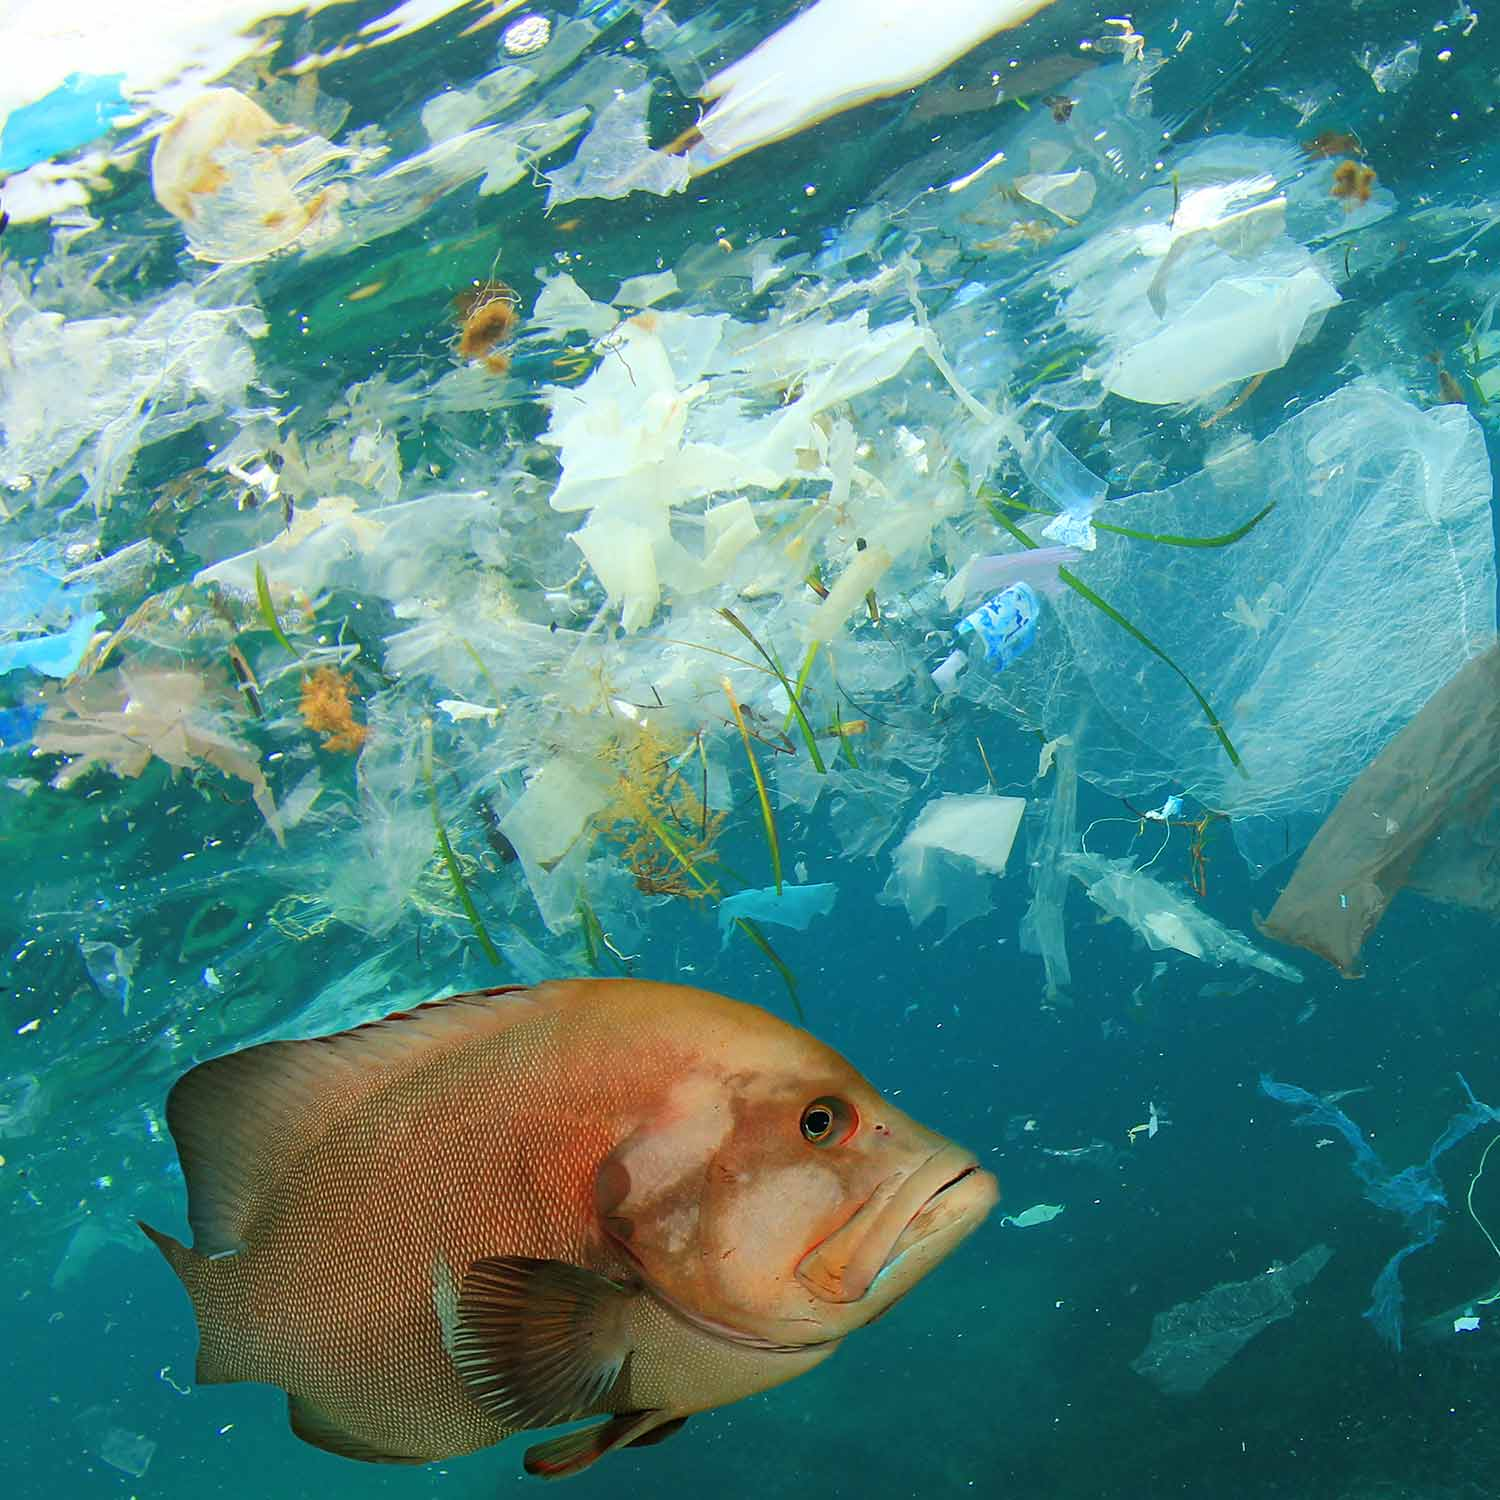 Image of fish in polluted with plastic water